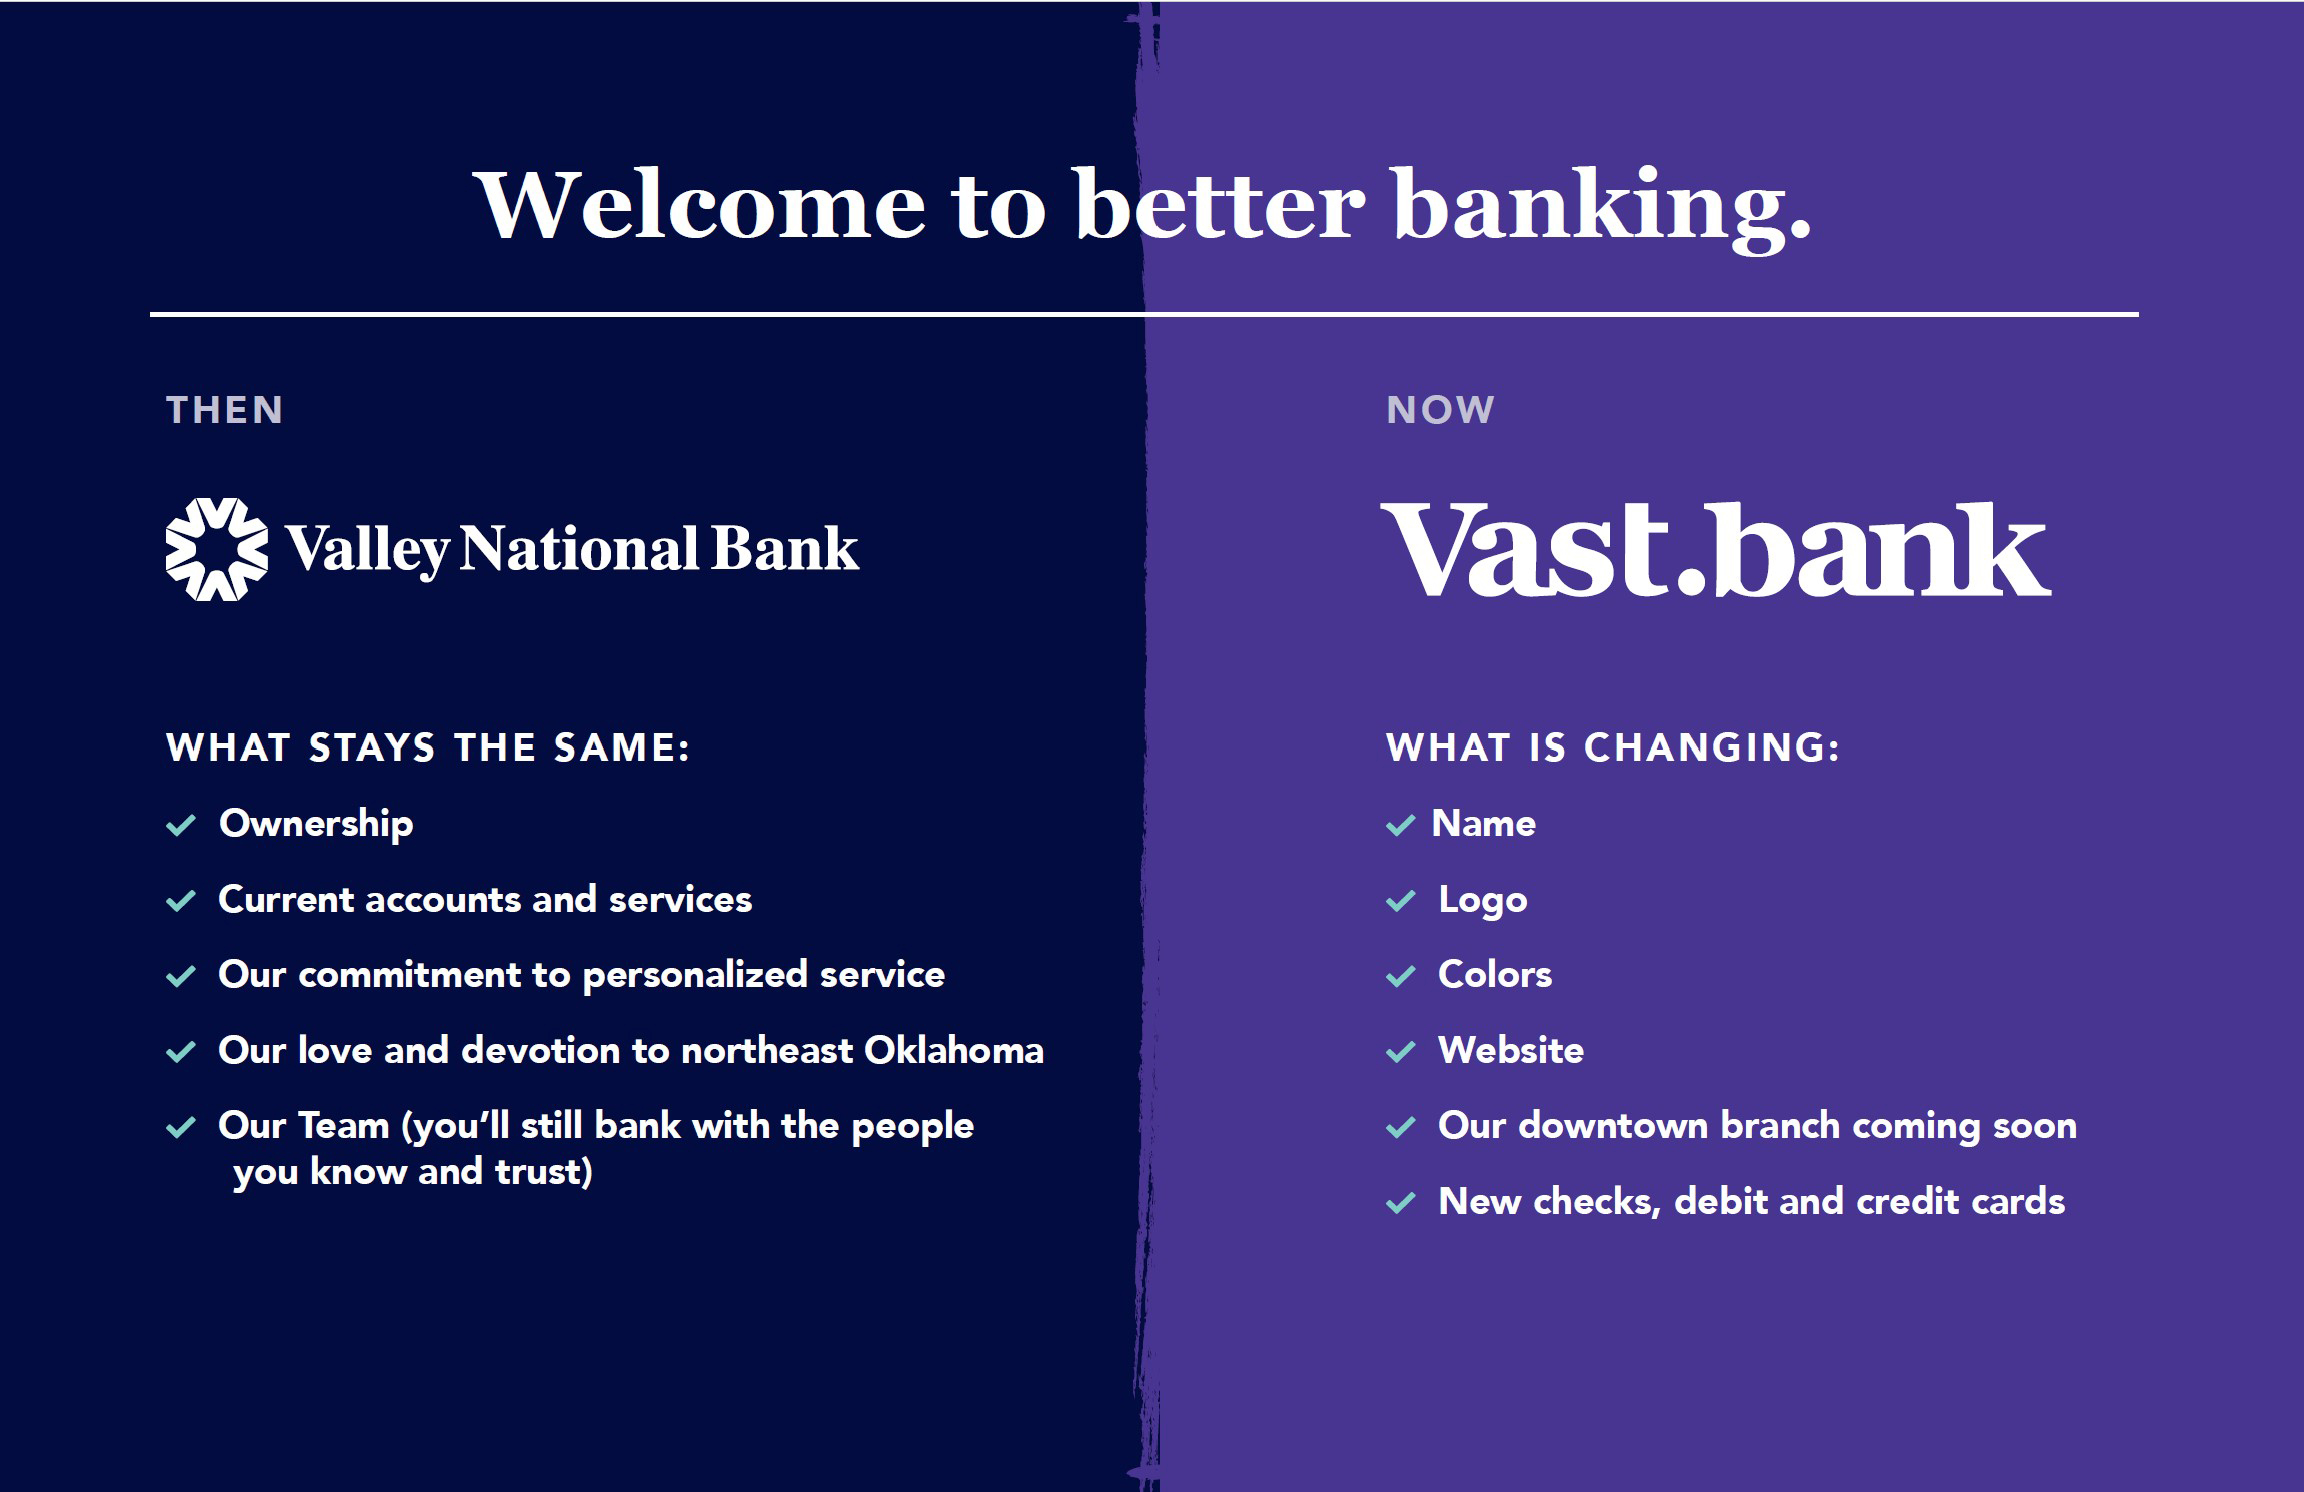 vast bank what is changing V2